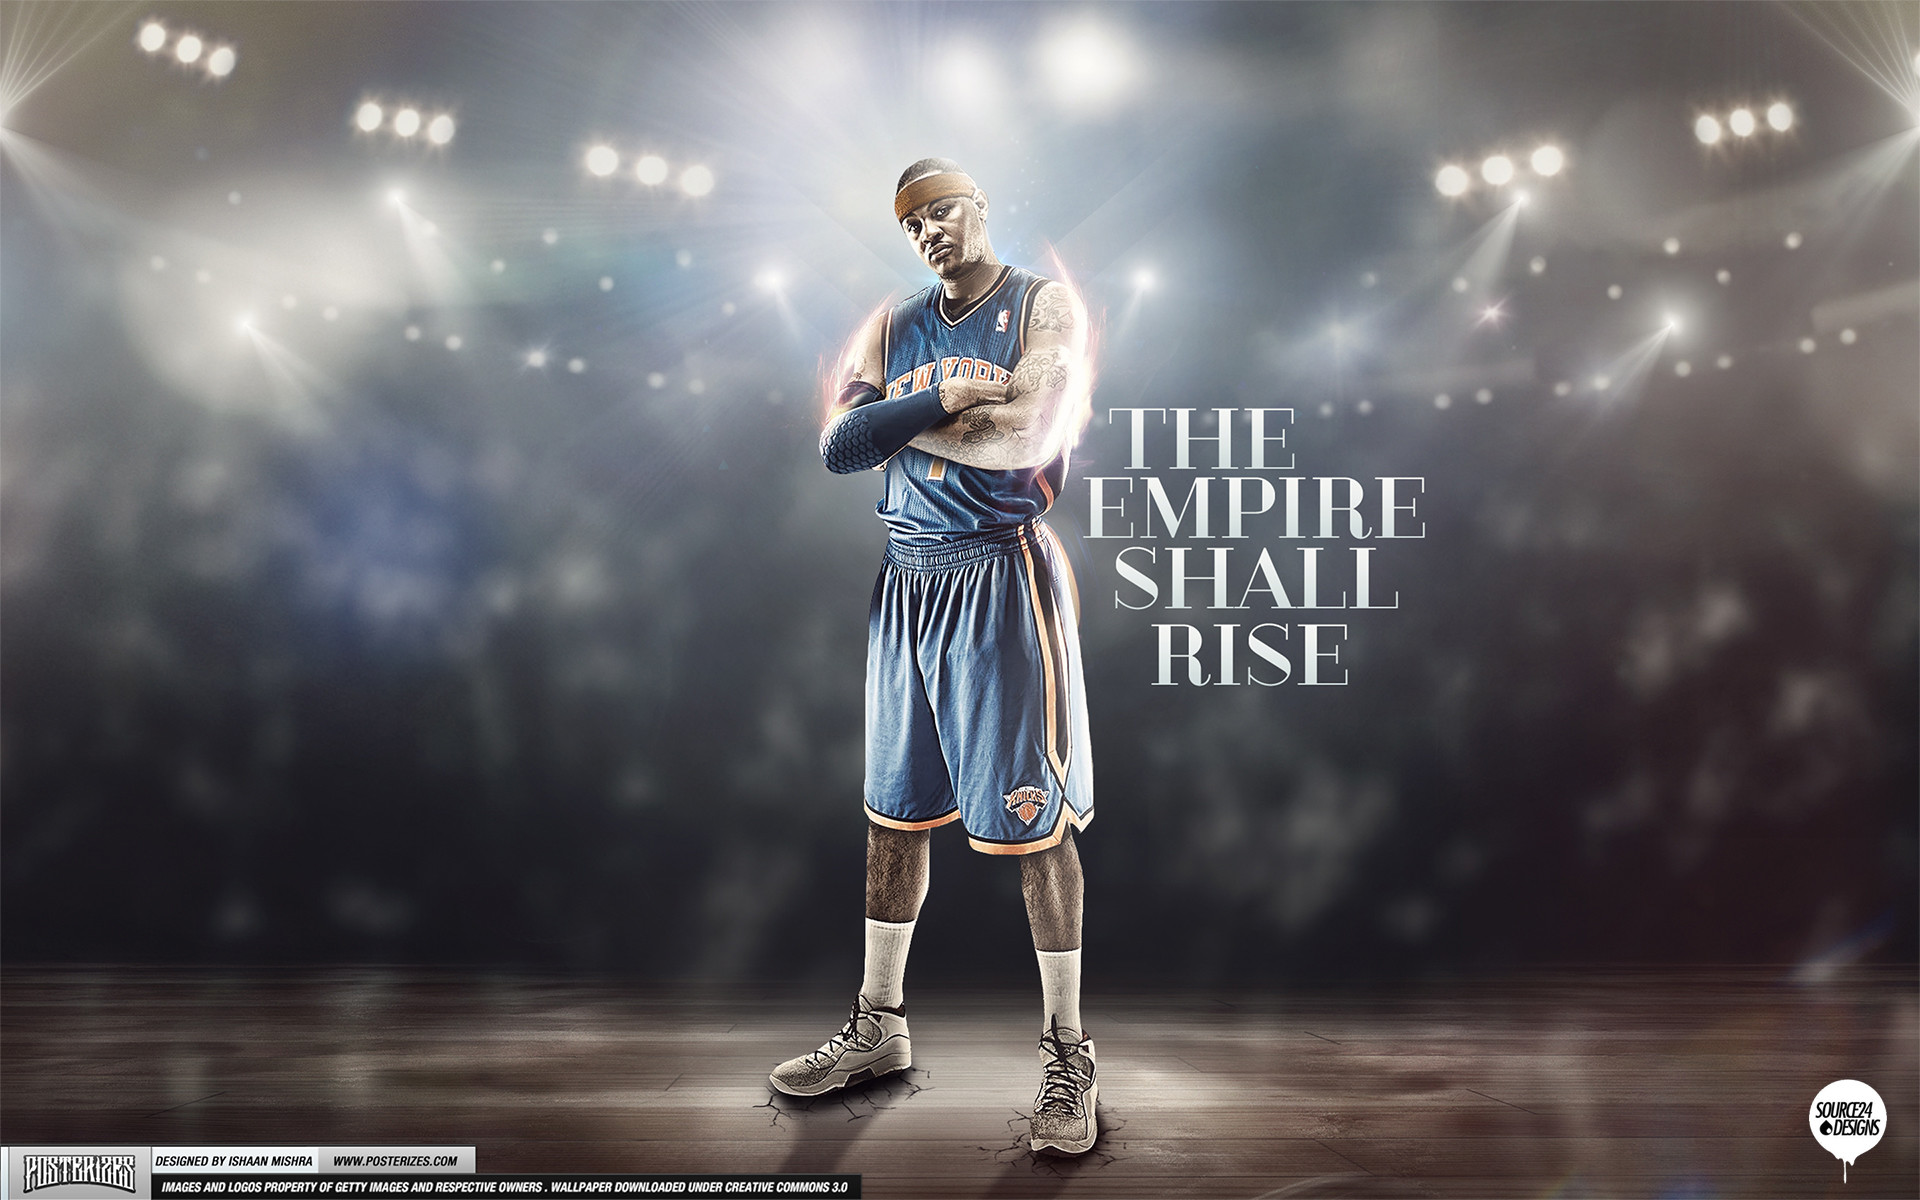 1920x1200 Carmelo Anthony Knicks Empire Wallpaper by IshaanMishra Carmelo Anthony  Knicks Empire Wallpaper by IshaanMishra